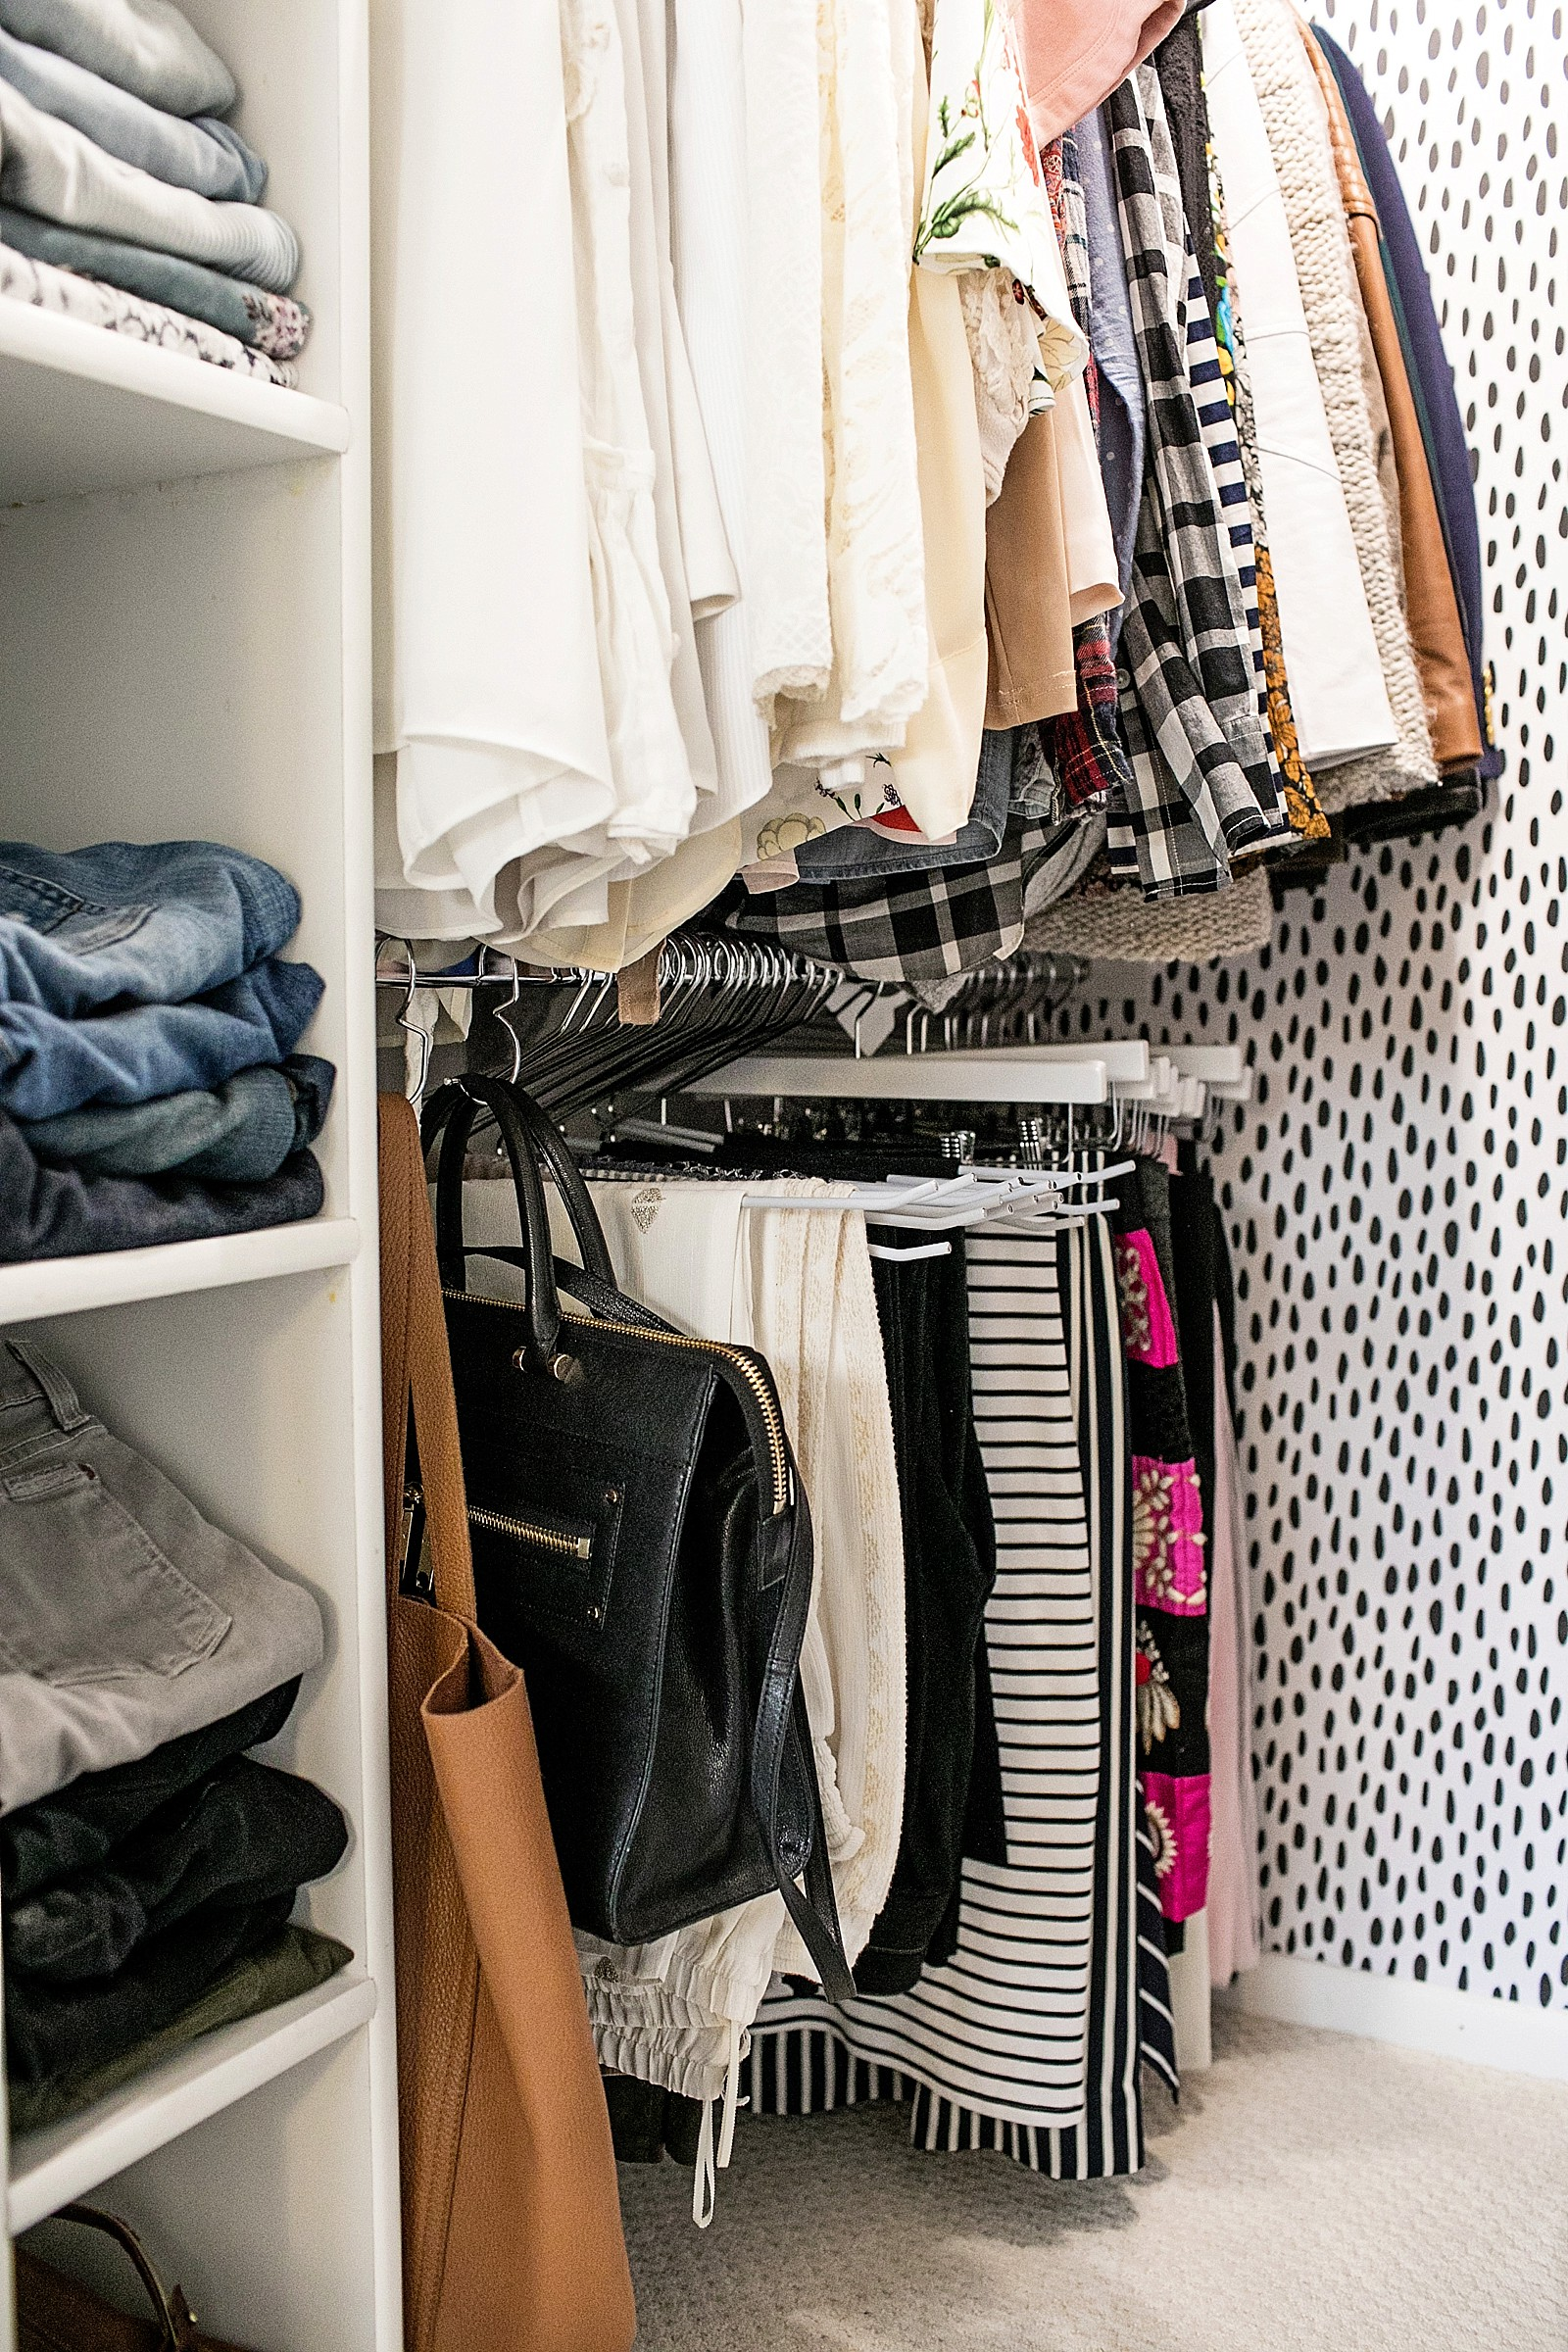 white wood pant hangers on chrome oval rods and purse hooks to keep a tiny closet organized